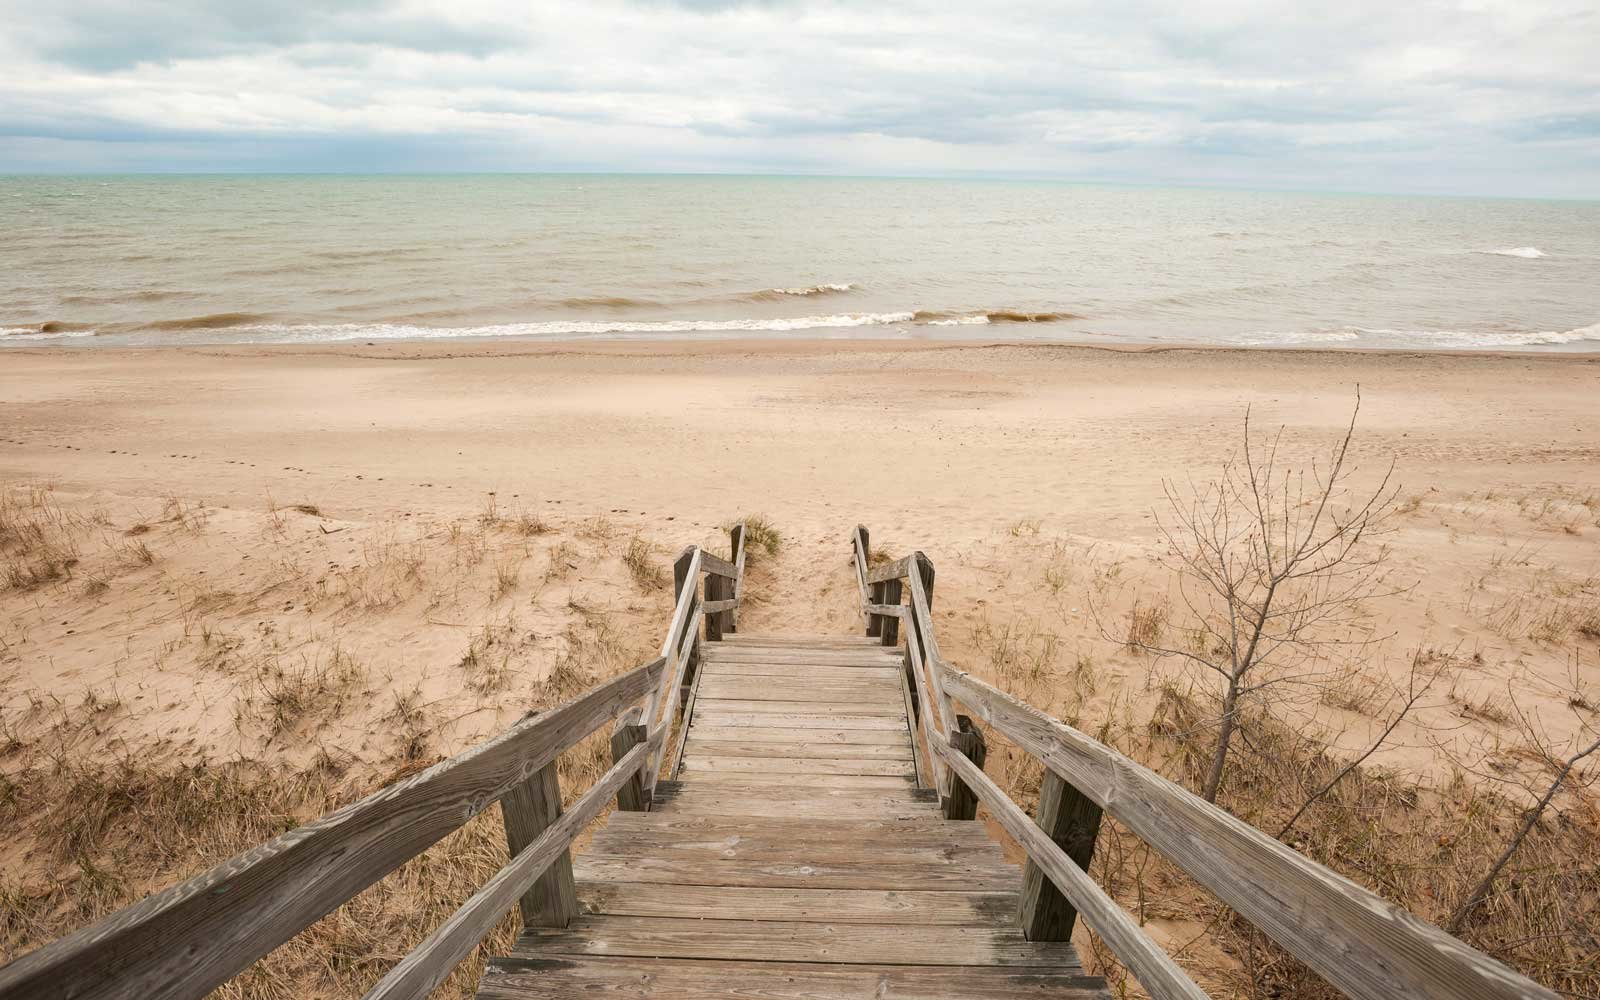 Boardwalk at the Indiana Dunes National Lakeshore